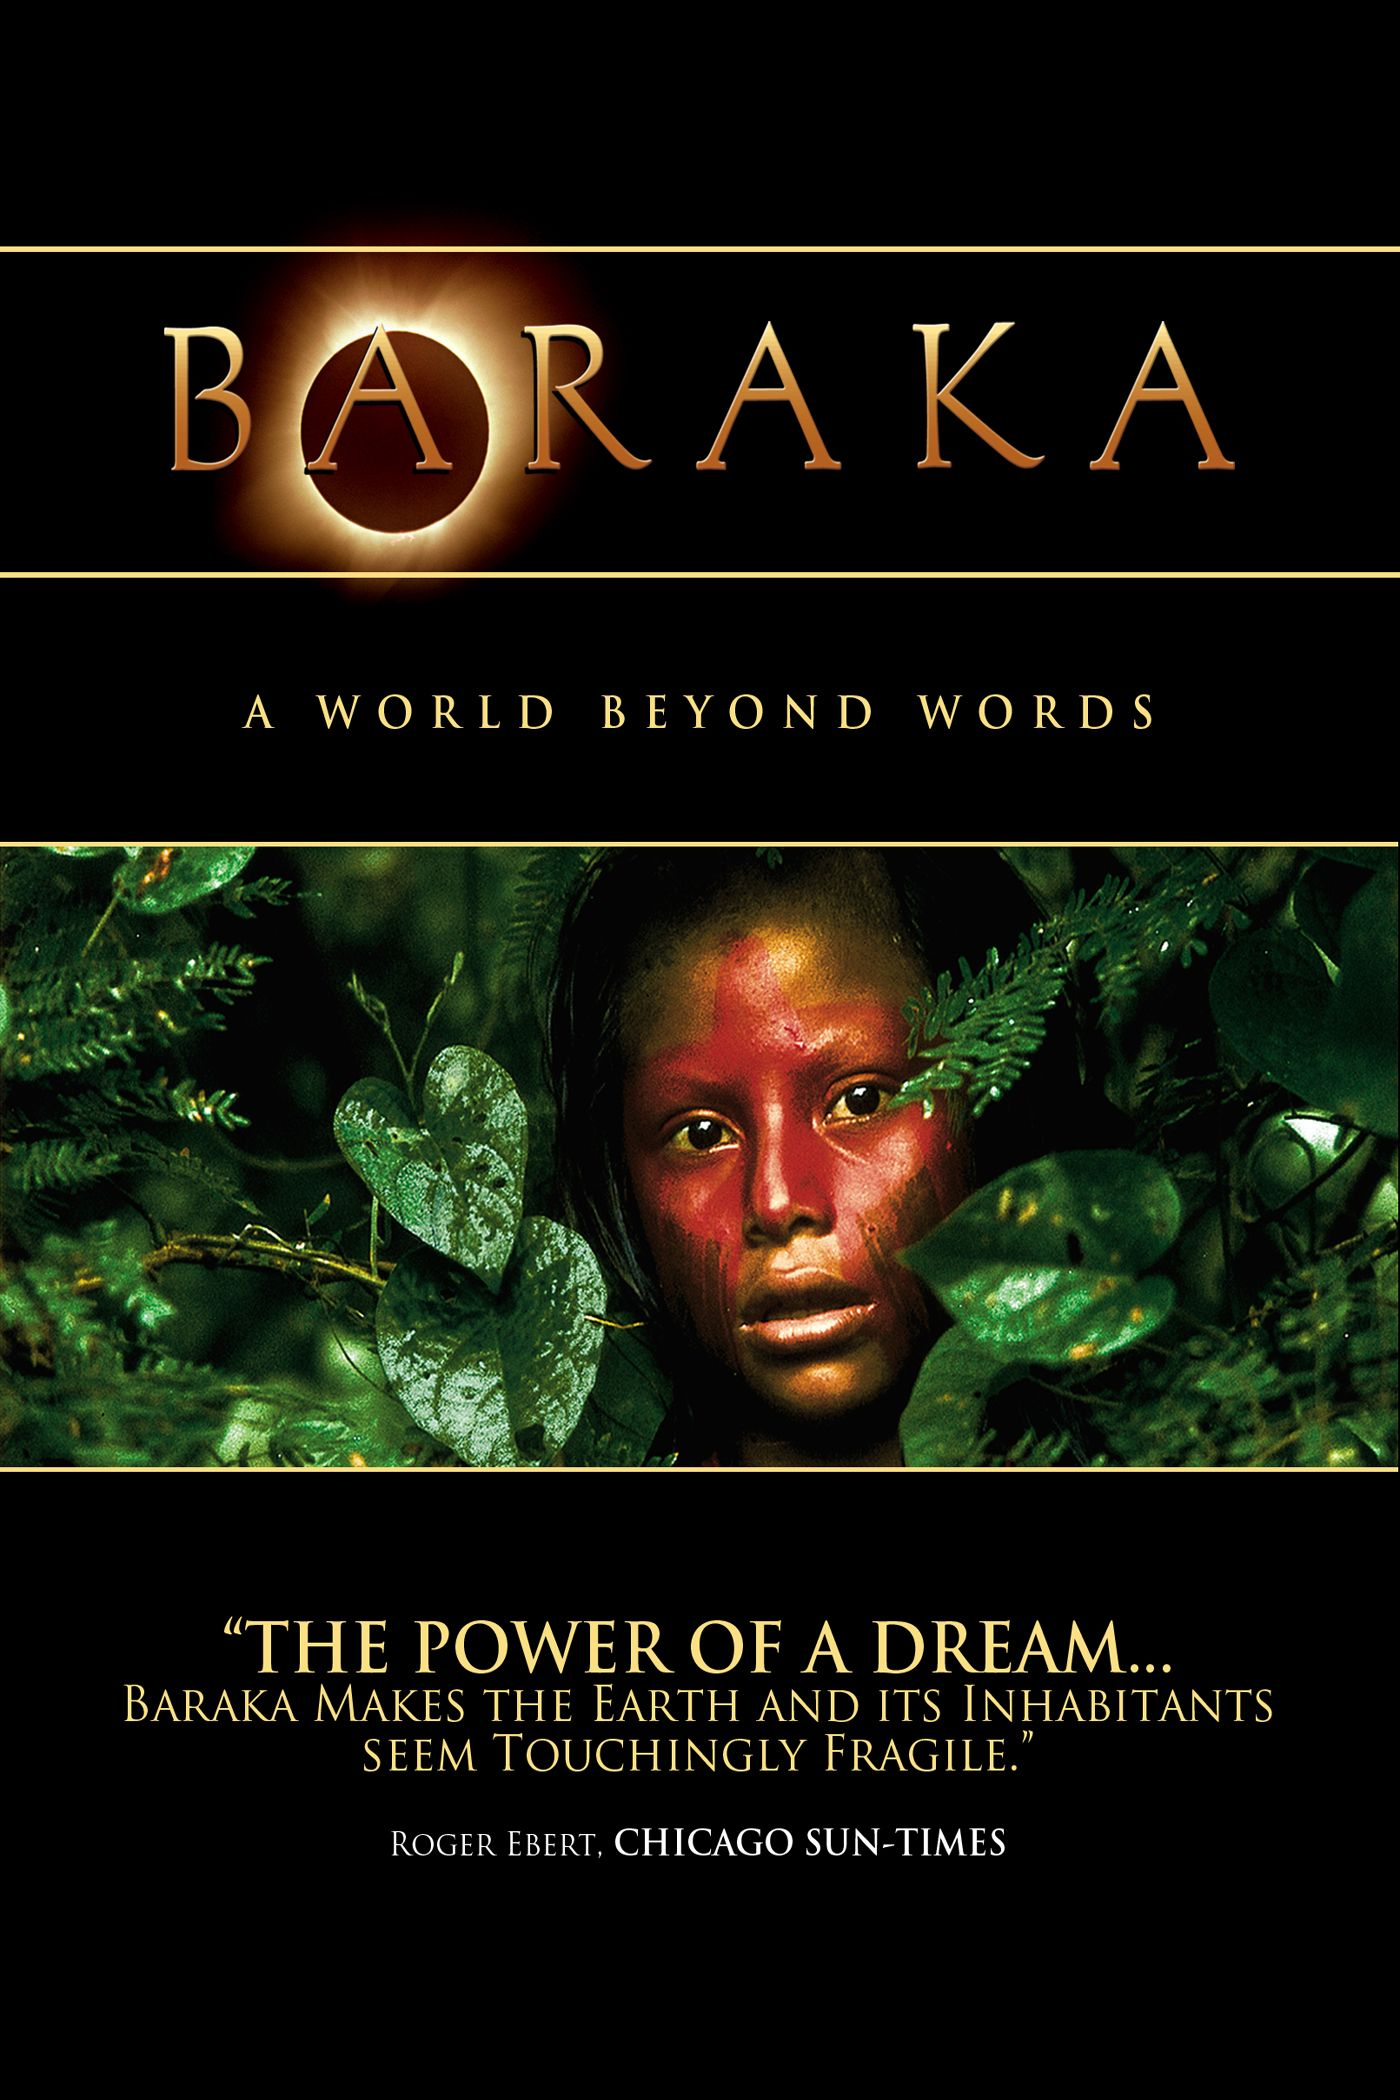 Baraka Movie Poster